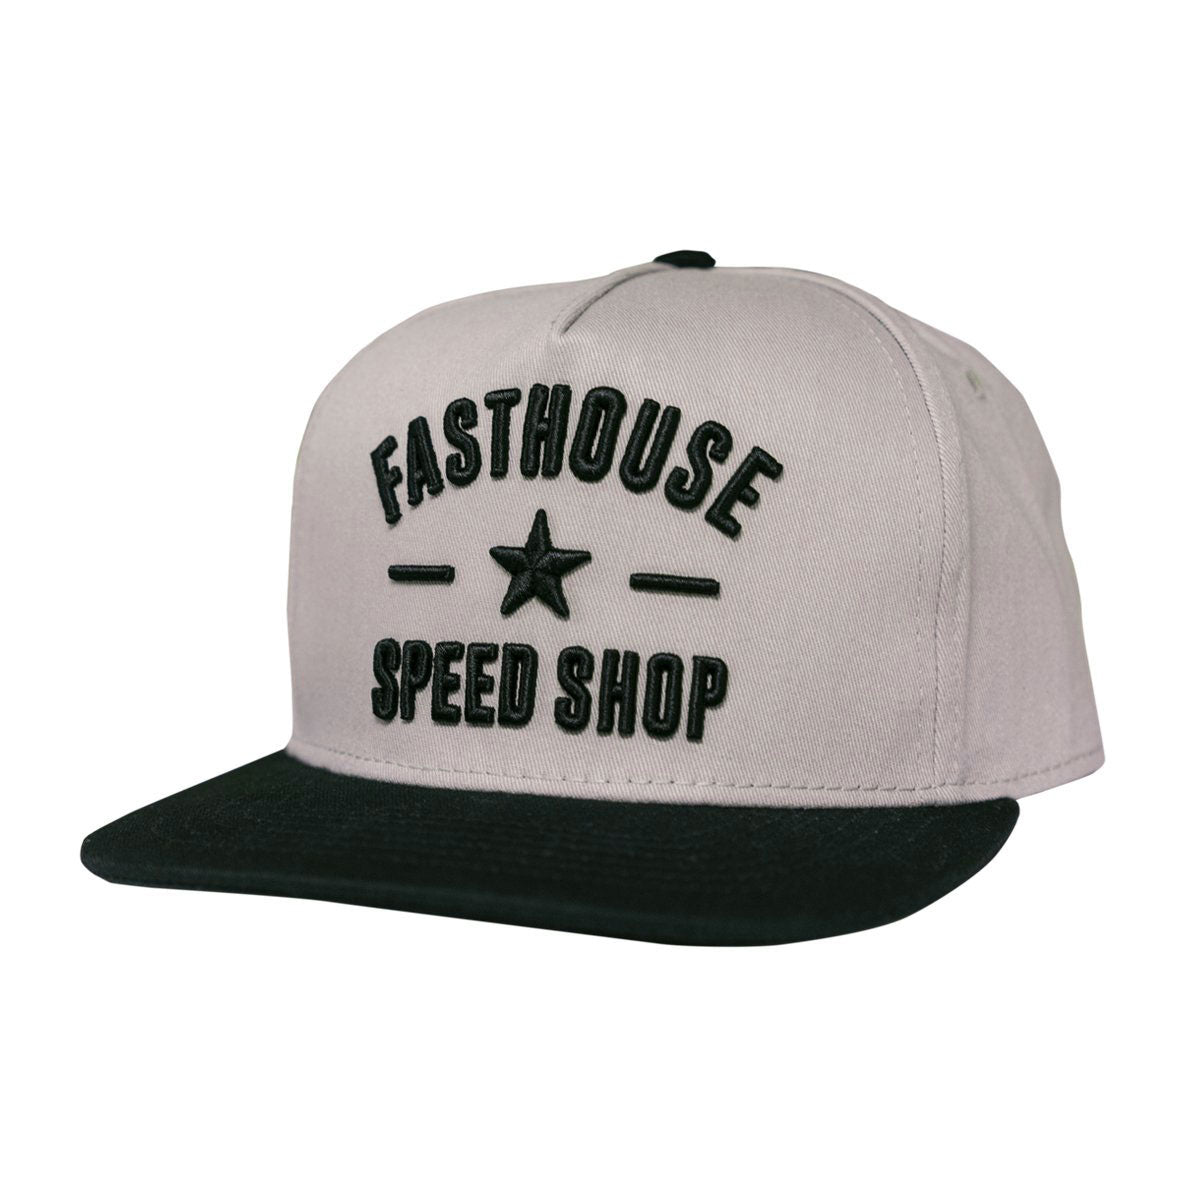 Fasthouse - Speed Star Hat - Grey/Black